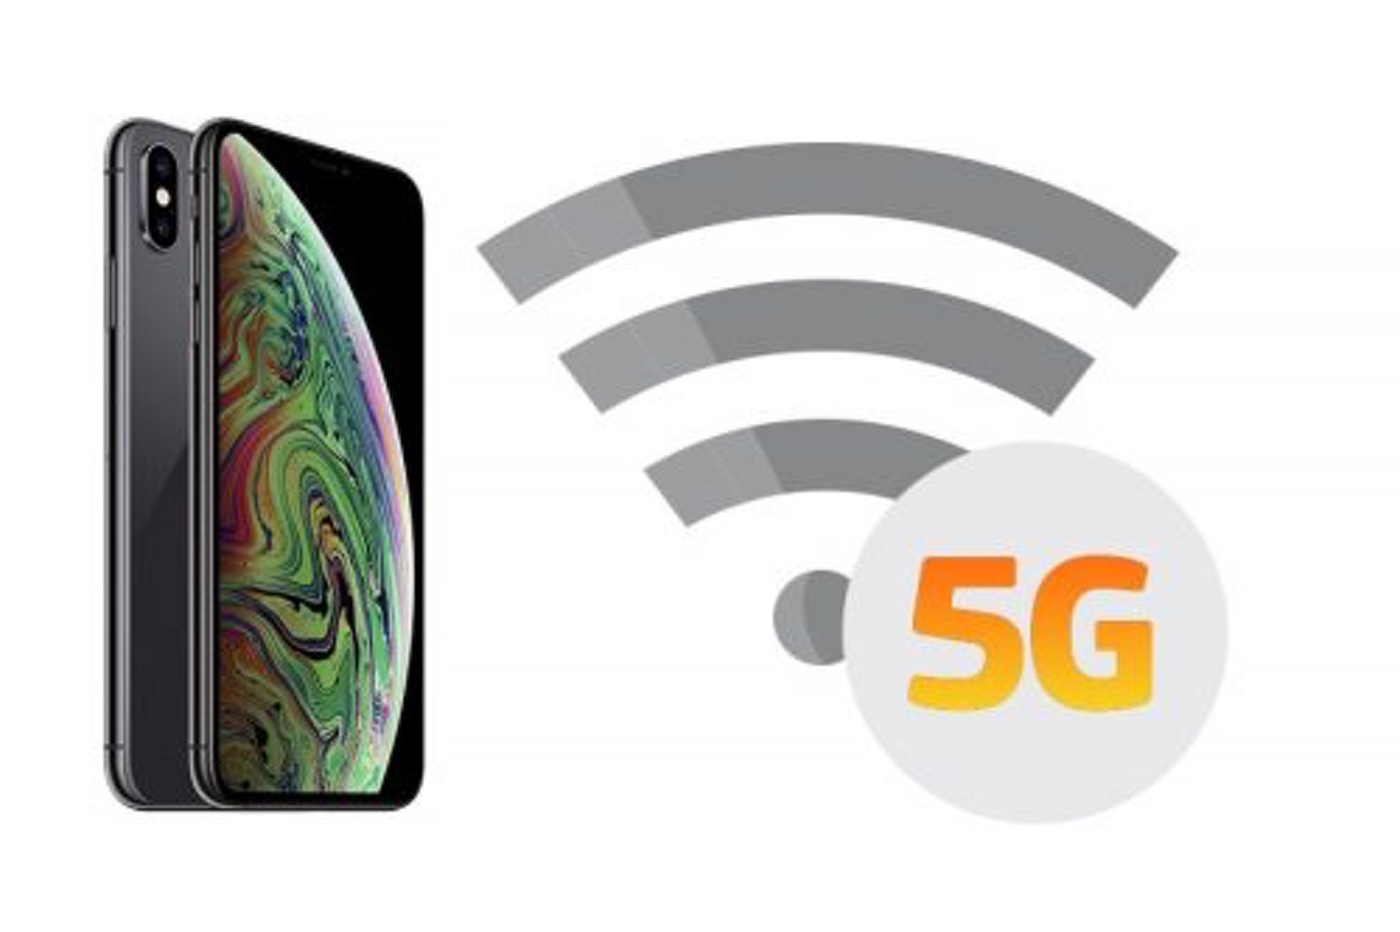 Puce 5G iPhone